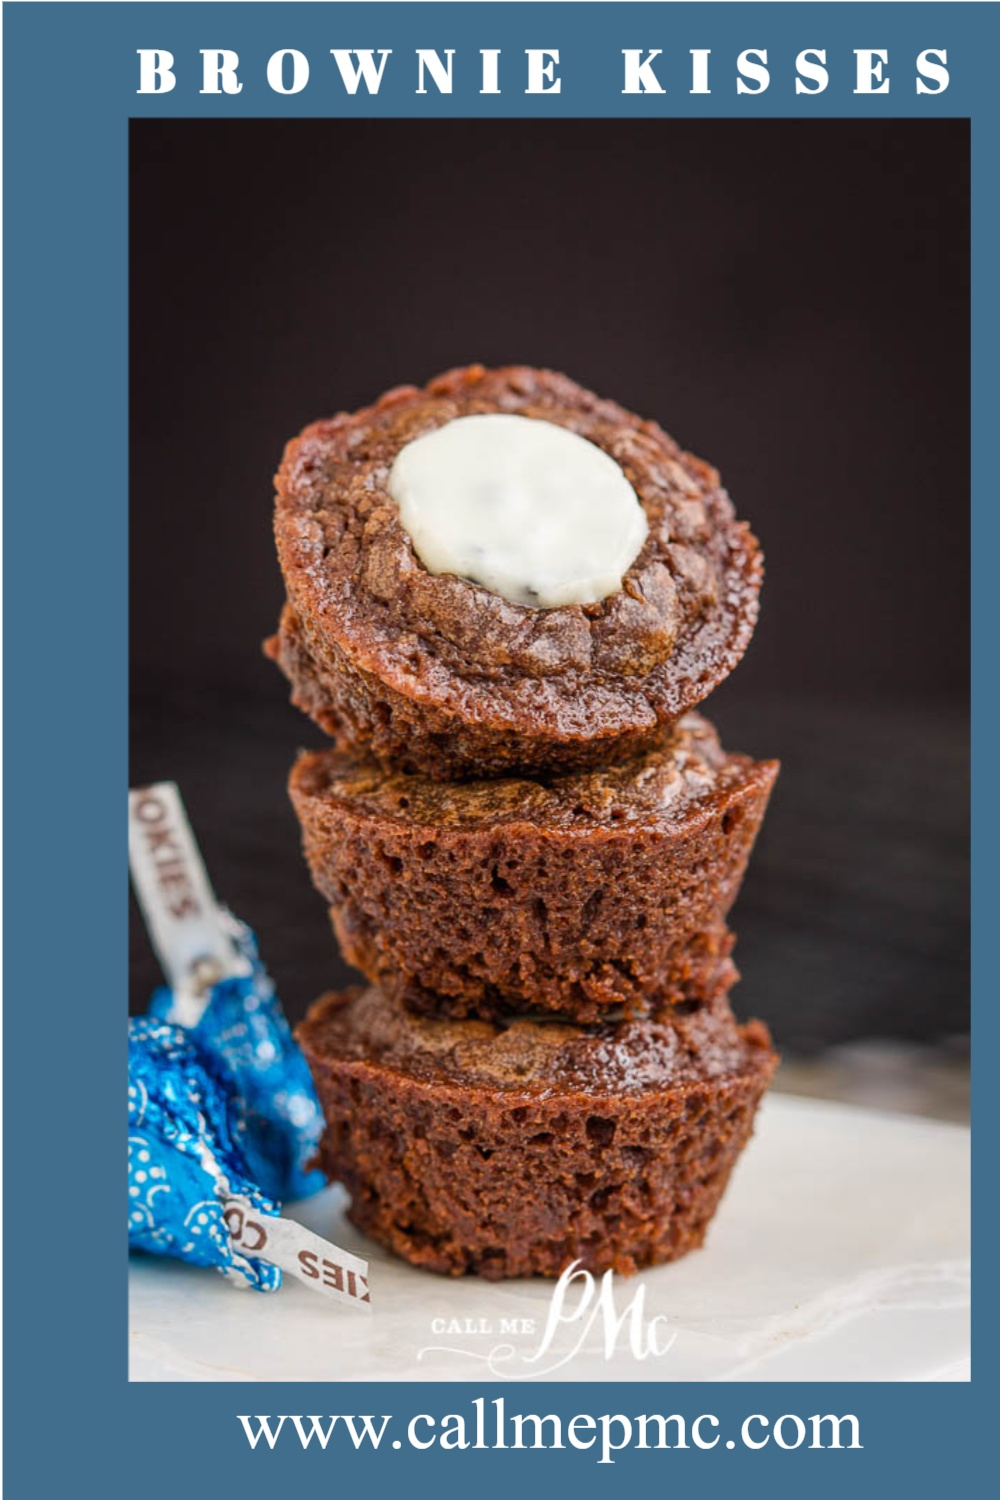 Brownie Kisses are rich, decadent chocolate fudge bites made more special crowned with cookies and cream chocolate Kiss while they're still hot and gooey. #brownies #recipes #cupcakes #cake #chocolate